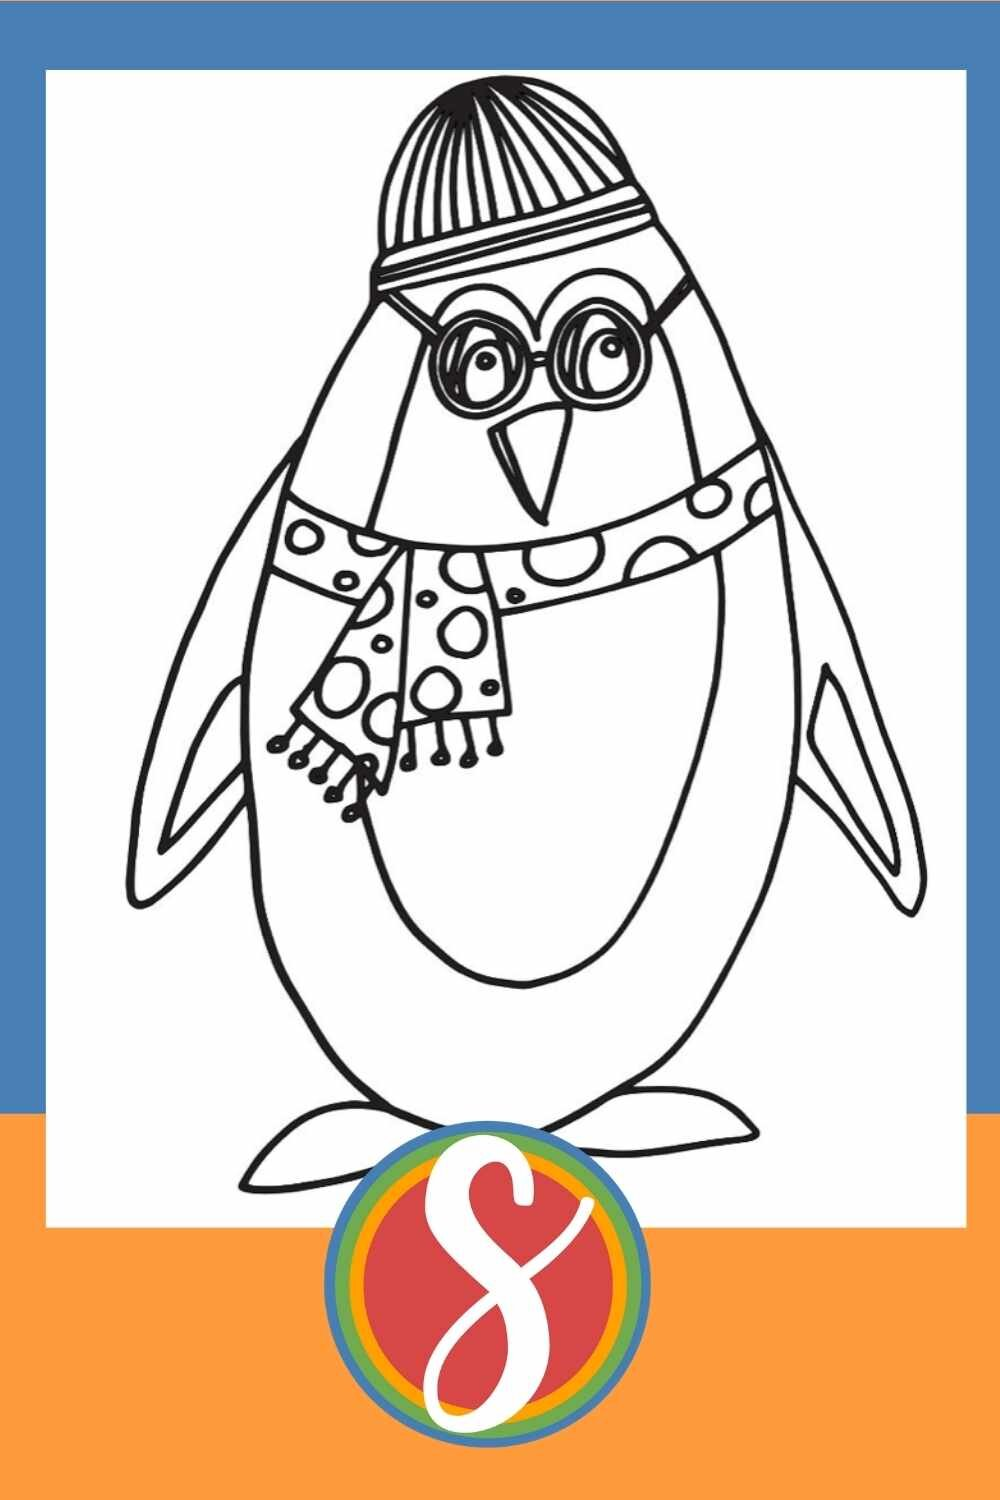 Winter Penguin - 30+ free penguin coloring pages in one post